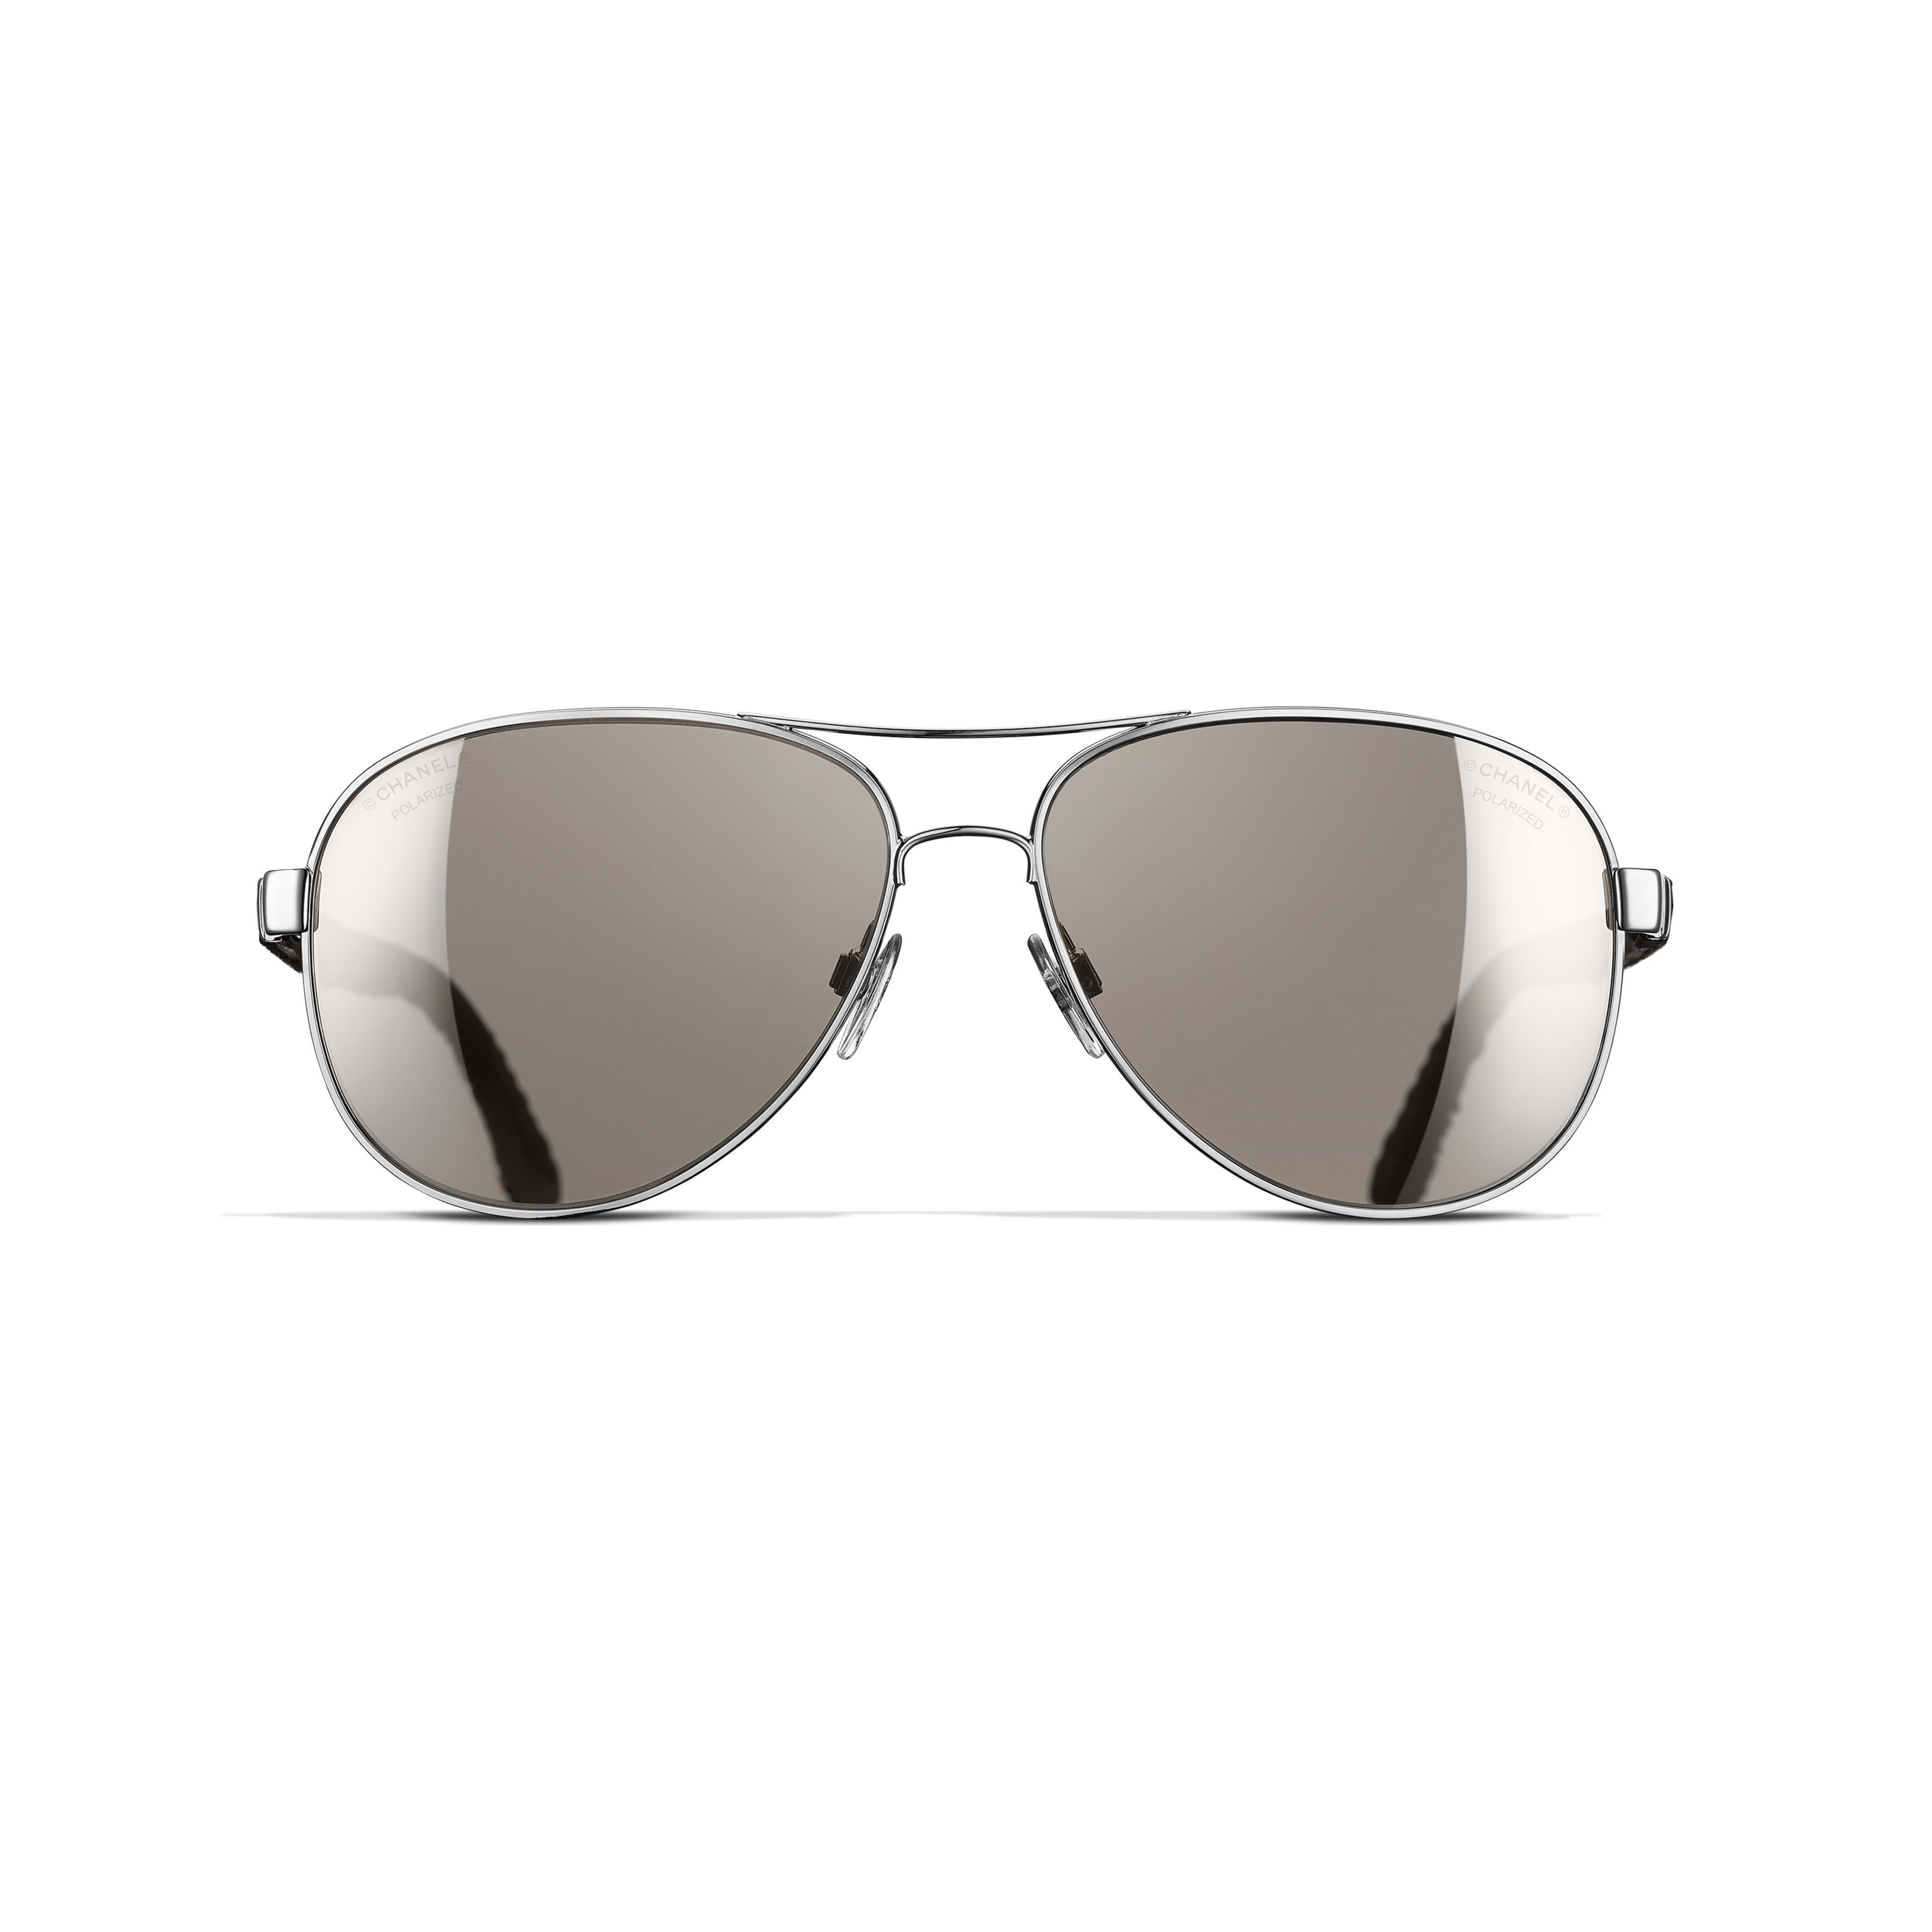 Pilot Sunglasses Metal, Rubber & Denim Silver -                                                    view 2 - see full sized version